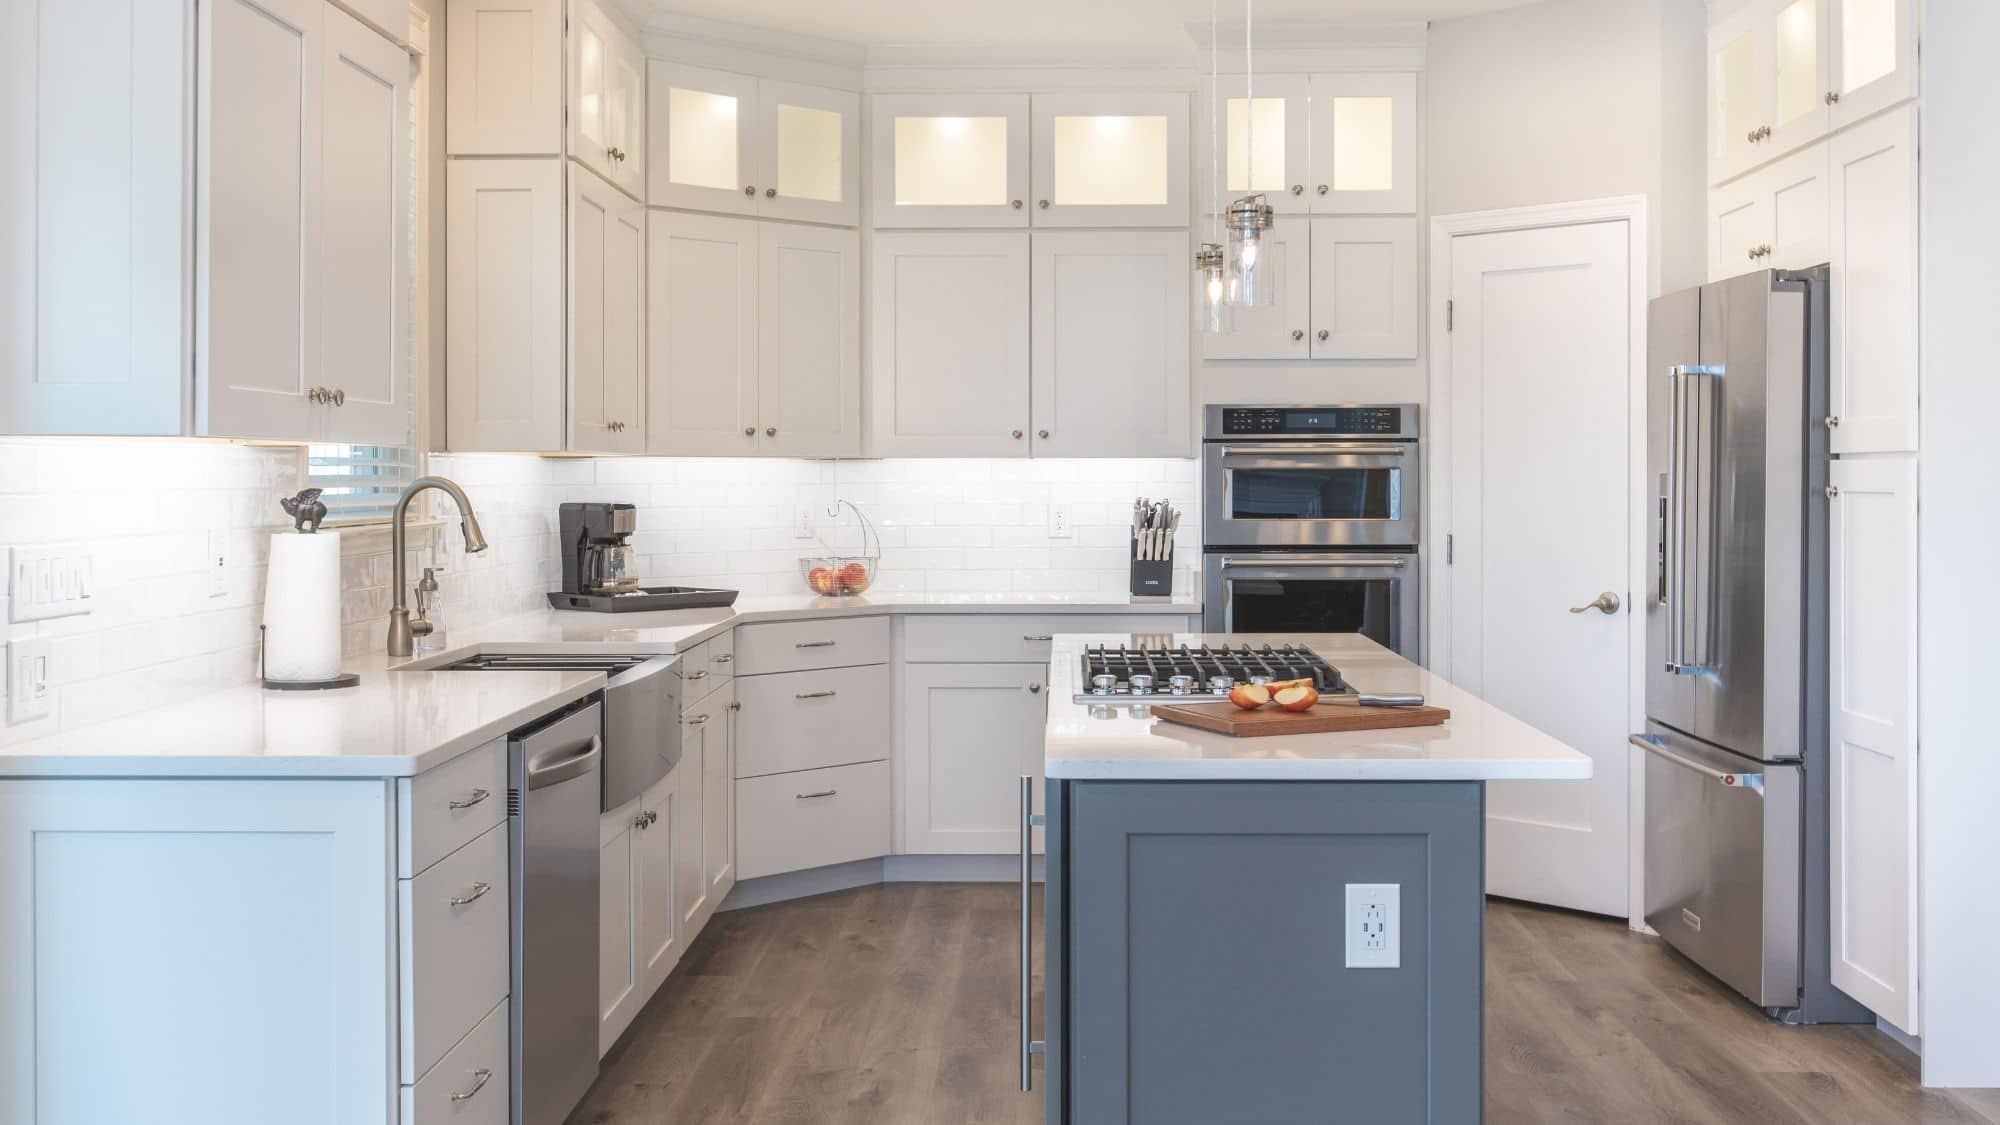 Kitchen Remodel Cost Guide Where To Spend And Save